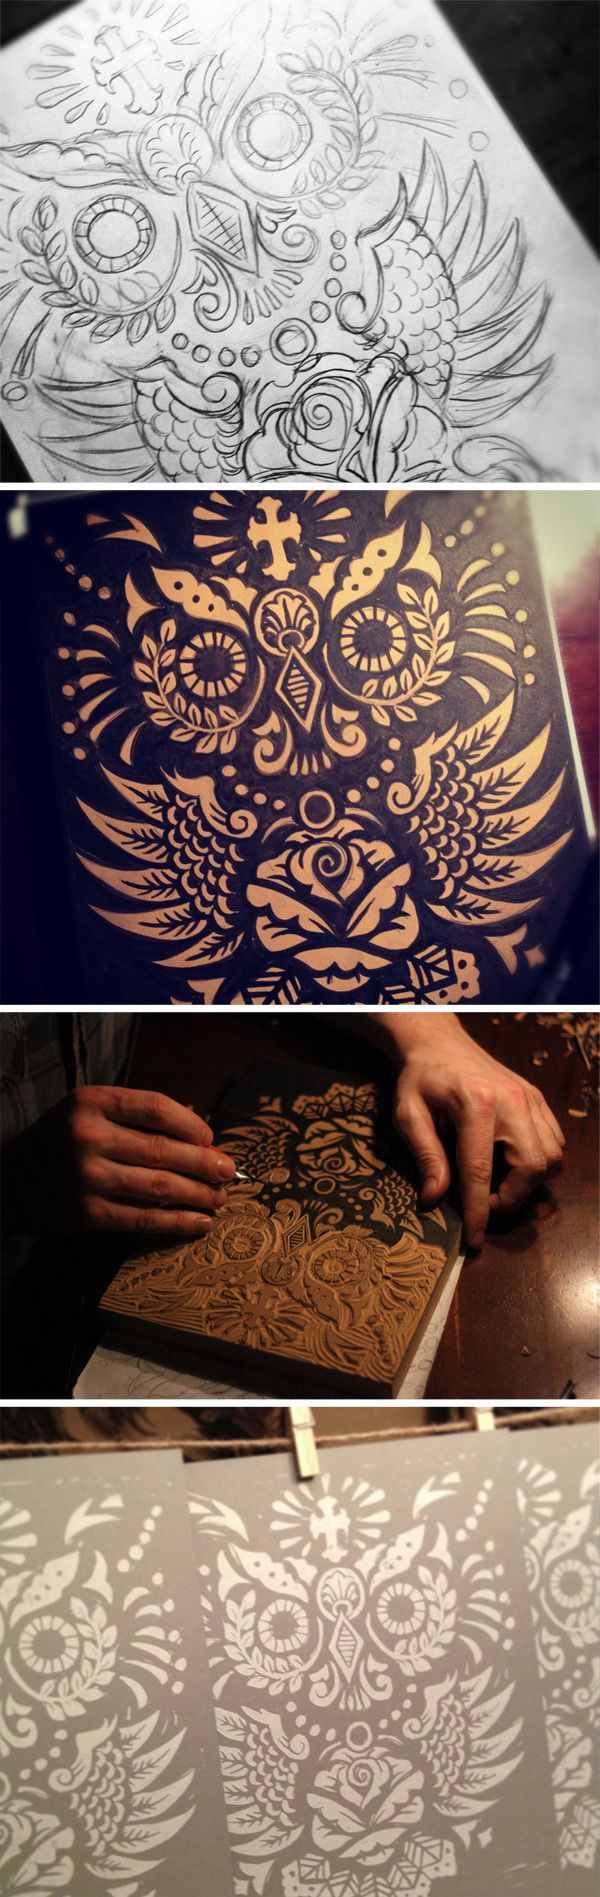 Dribbble - owl-print-process.jpg by Derrick Castle